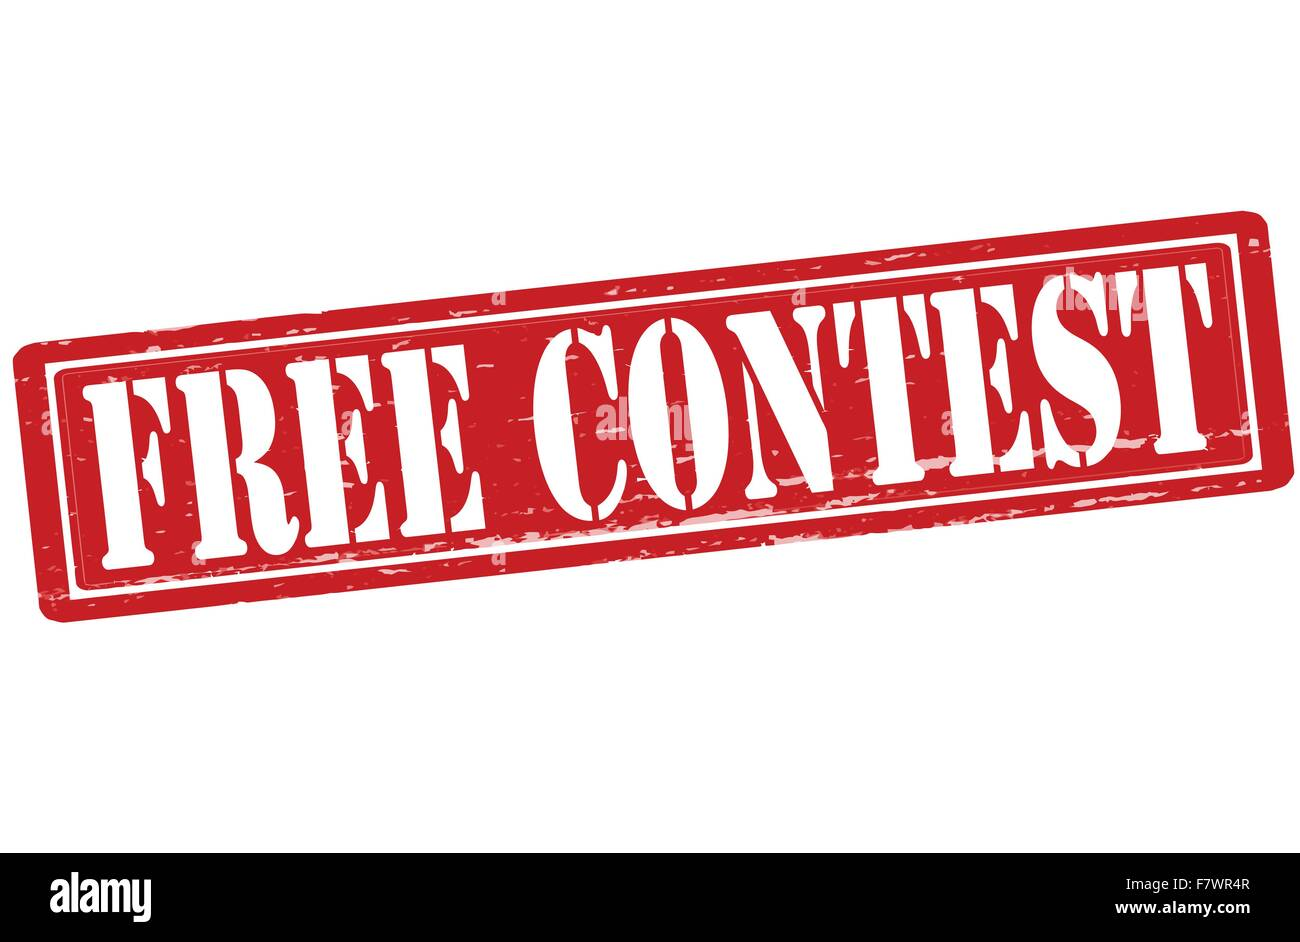 Free contest - Stock Image